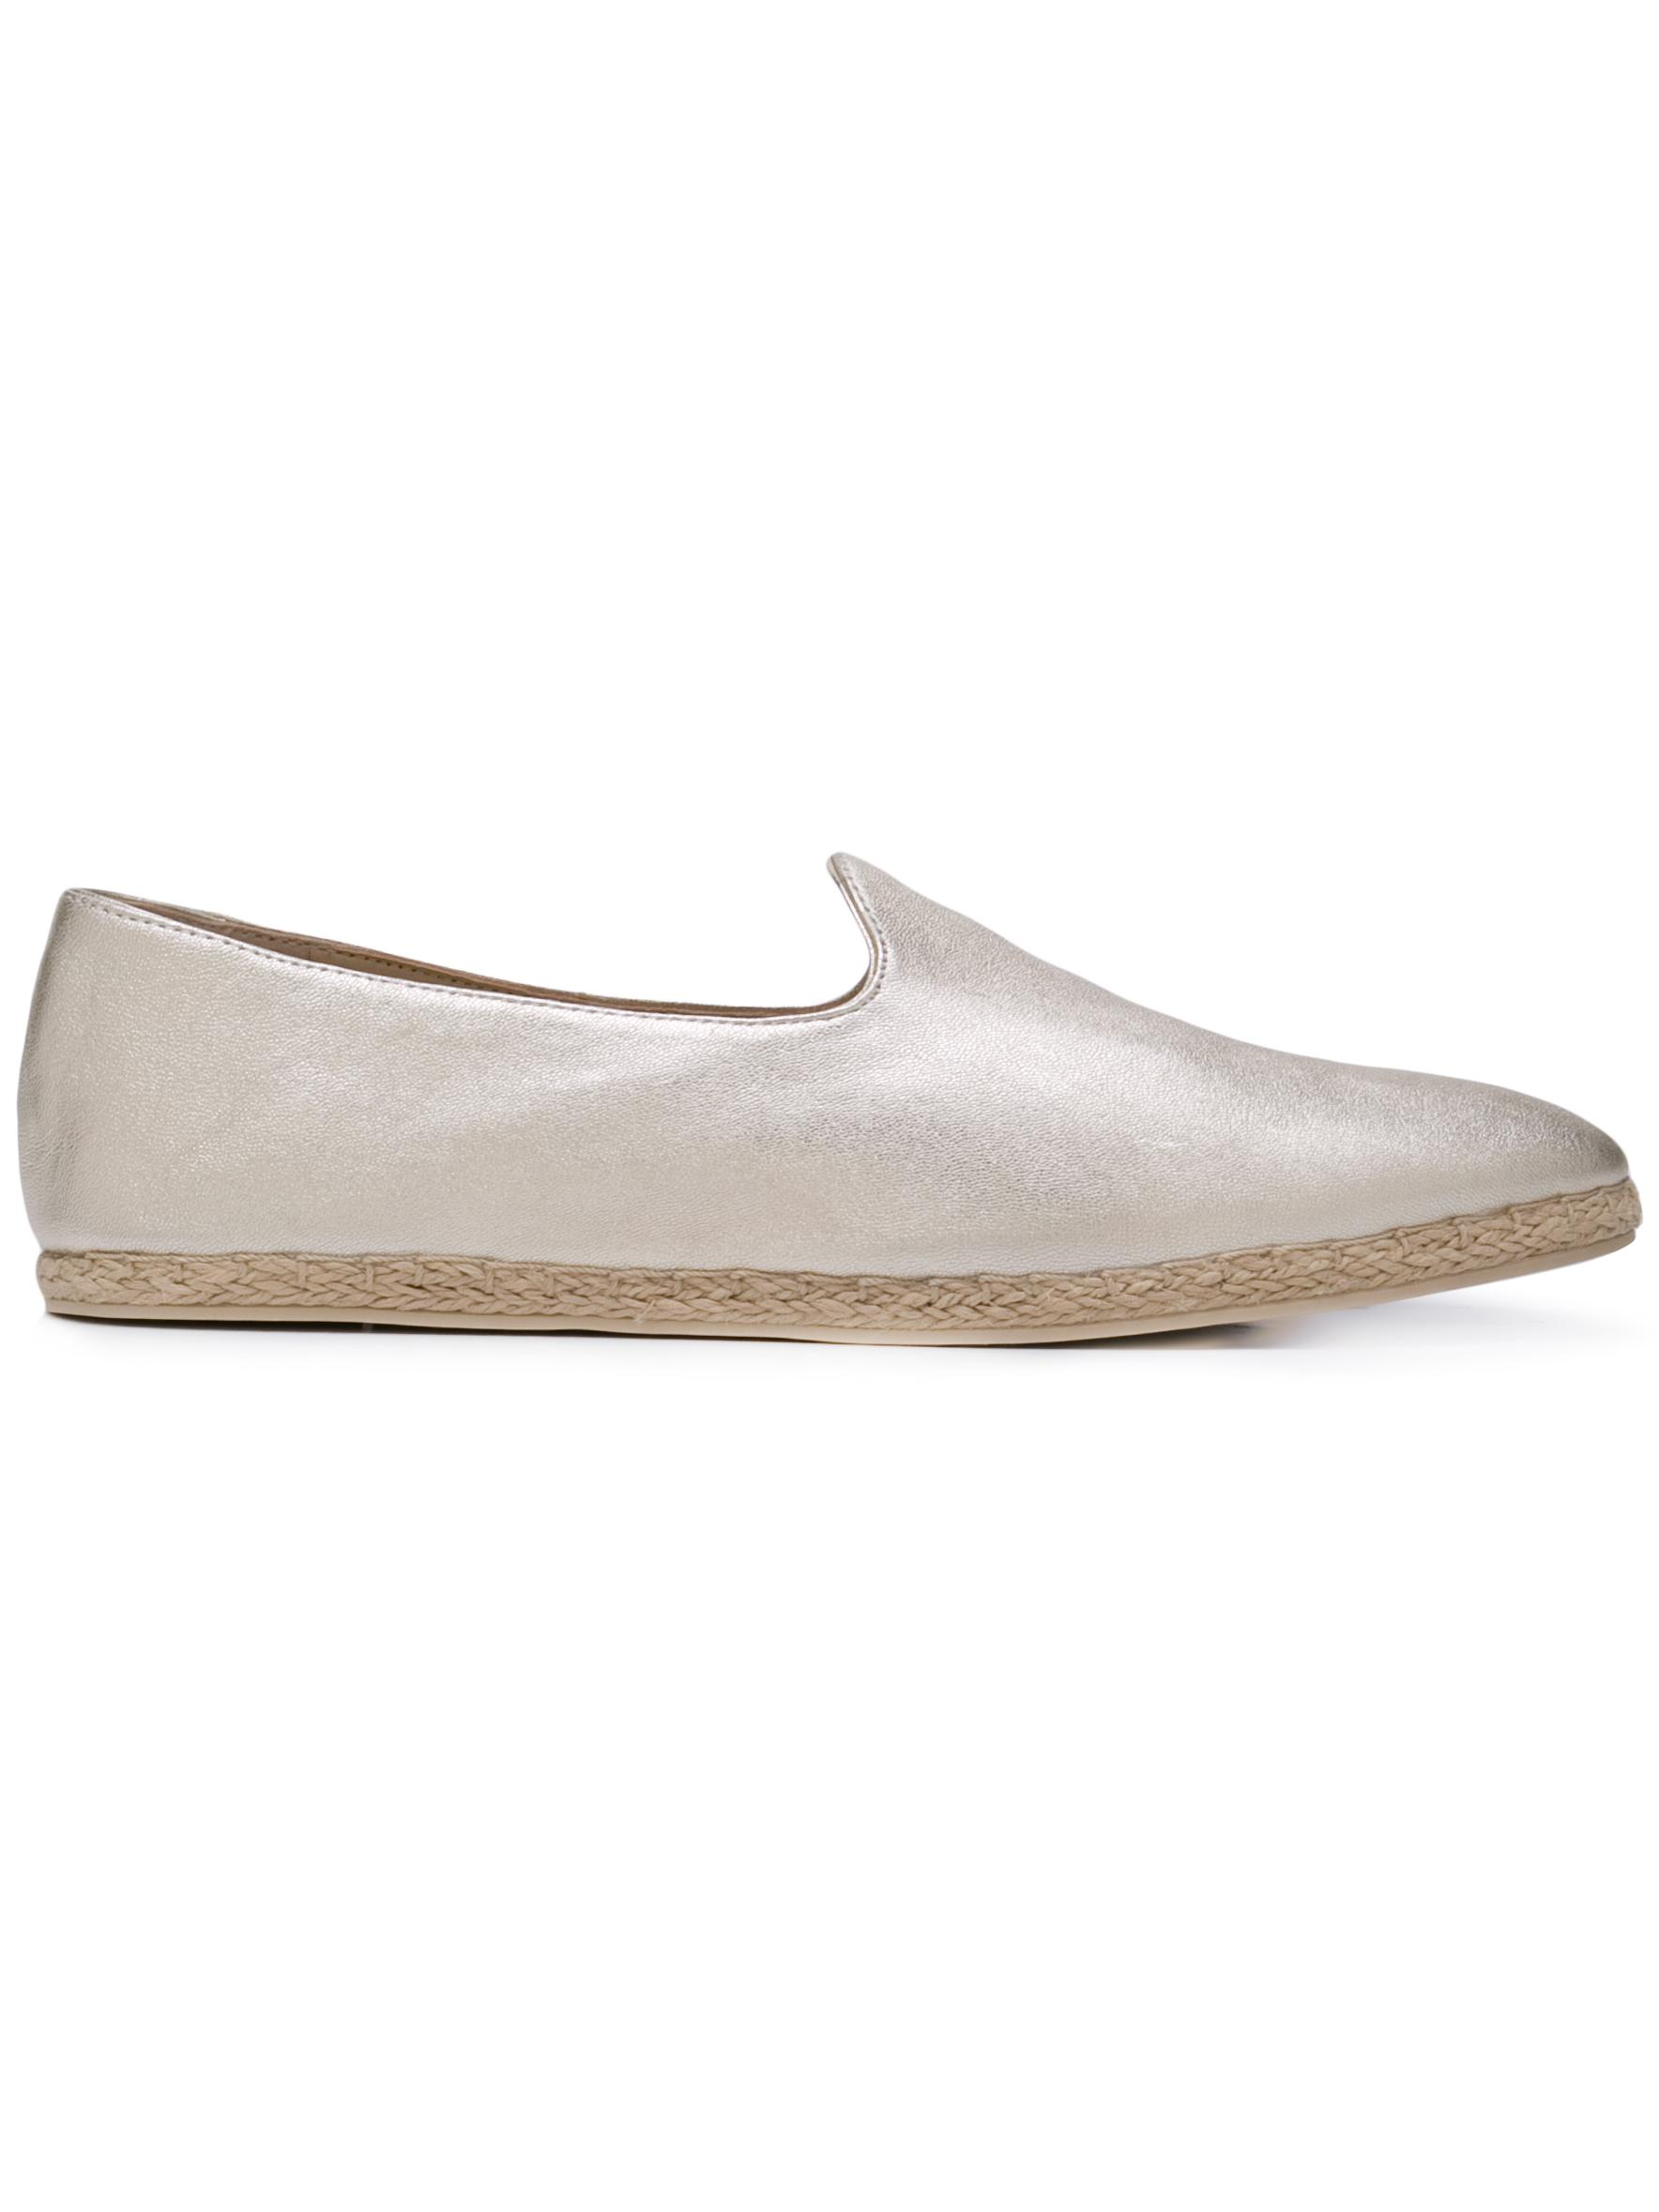 Metallic Leather Espadrille Loafer Item # MALIA-2